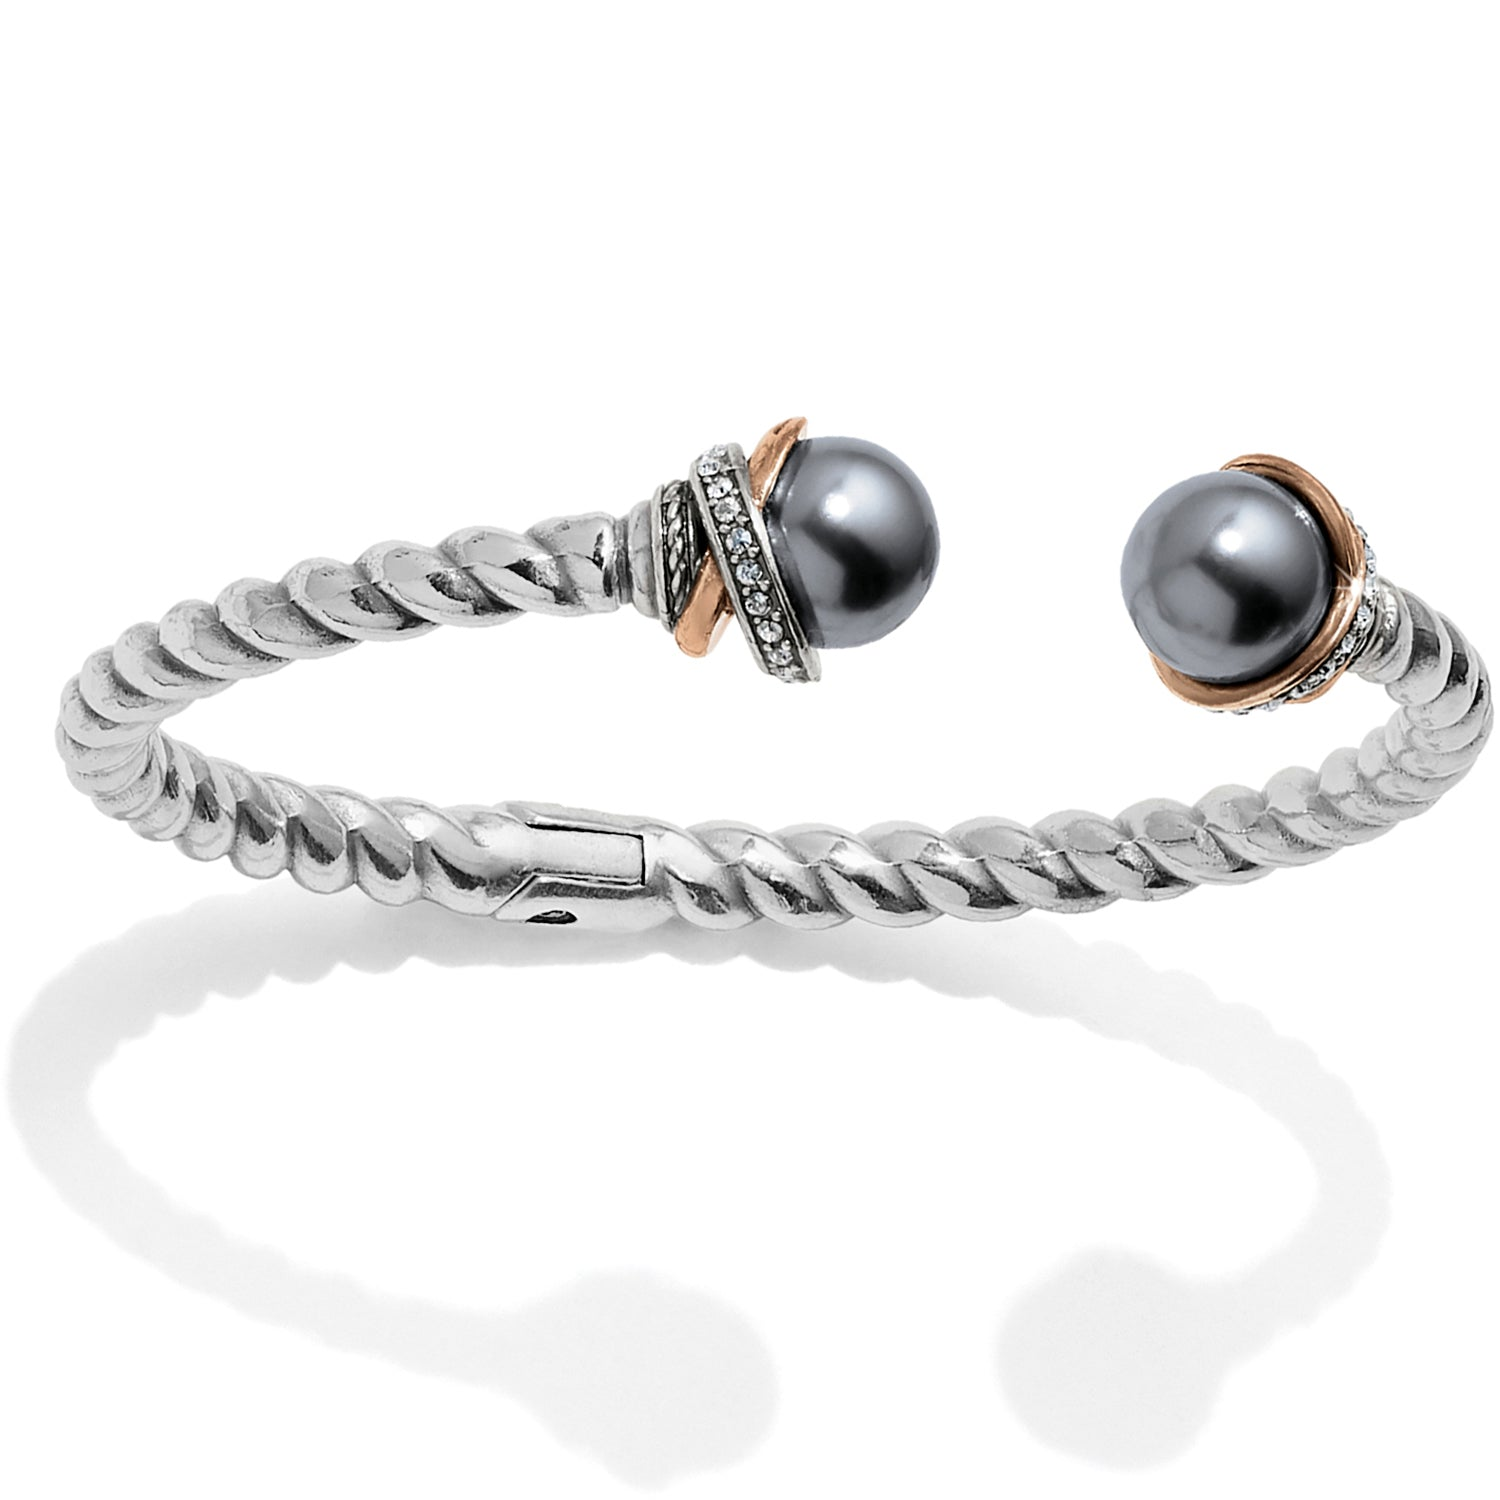 Brighton Jewelry Neptune's Rings Gray Pearl Open Hinged Bracelet. Decadent handmade Japanese gray pearls add luster and luxe to this rope hinged bangle. Finished with a tumble of mixed metal and Swarovski encrusted rings from our Neptune's Rings Collection.